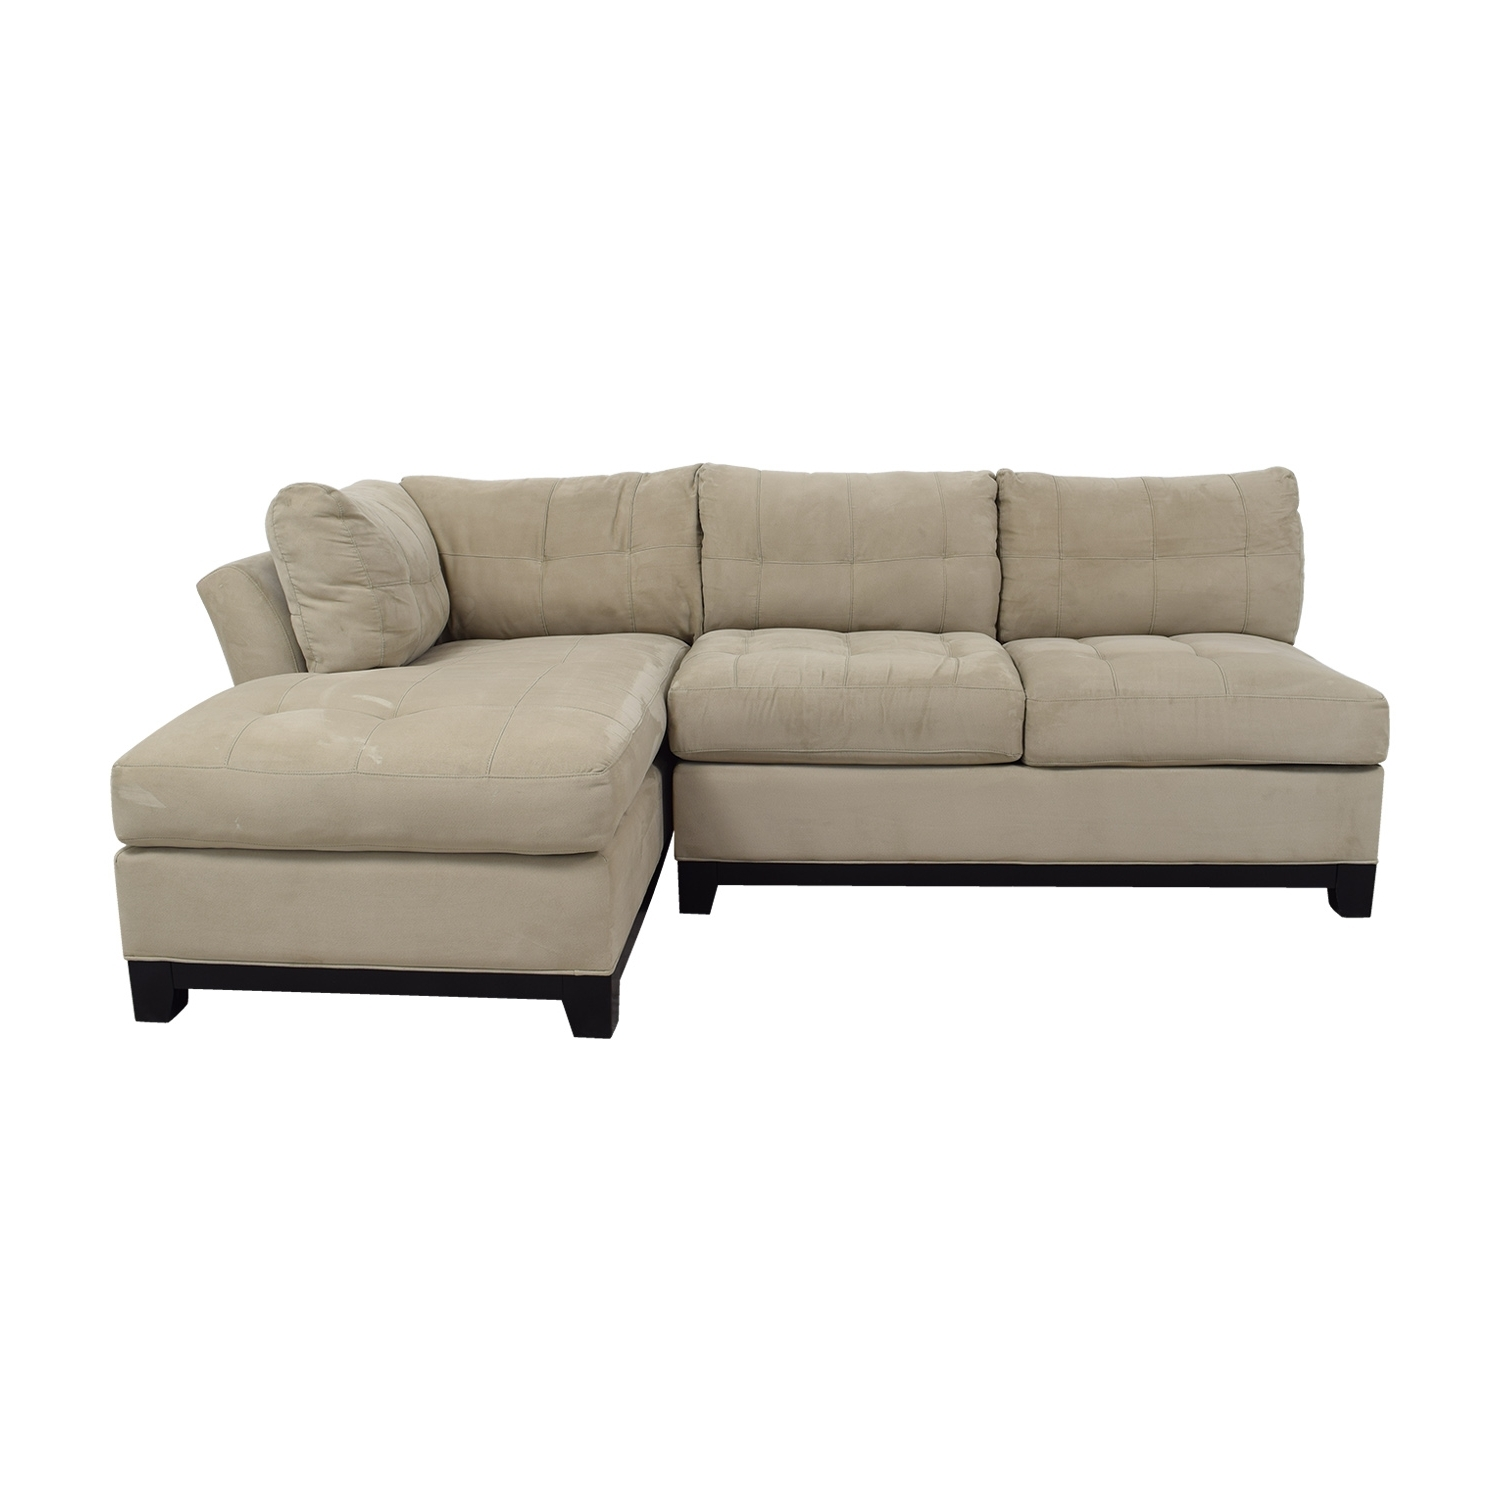 [%83% Off – Raymour & Flannigan Raymour & Flanigan Cindy Crawford With Regard To Best And Newest Sectional Sofas At Raymour And Flanigan|Sectional Sofas At Raymour And Flanigan With Regard To Most Up To Date 83% Off – Raymour & Flannigan Raymour & Flanigan Cindy Crawford|Recent Sectional Sofas At Raymour And Flanigan Pertaining To 83% Off – Raymour & Flannigan Raymour & Flanigan Cindy Crawford|Current 83% Off – Raymour & Flannigan Raymour & Flanigan Cindy Crawford With Regard To Sectional Sofas At Raymour And Flanigan%] (View 7 of 15)